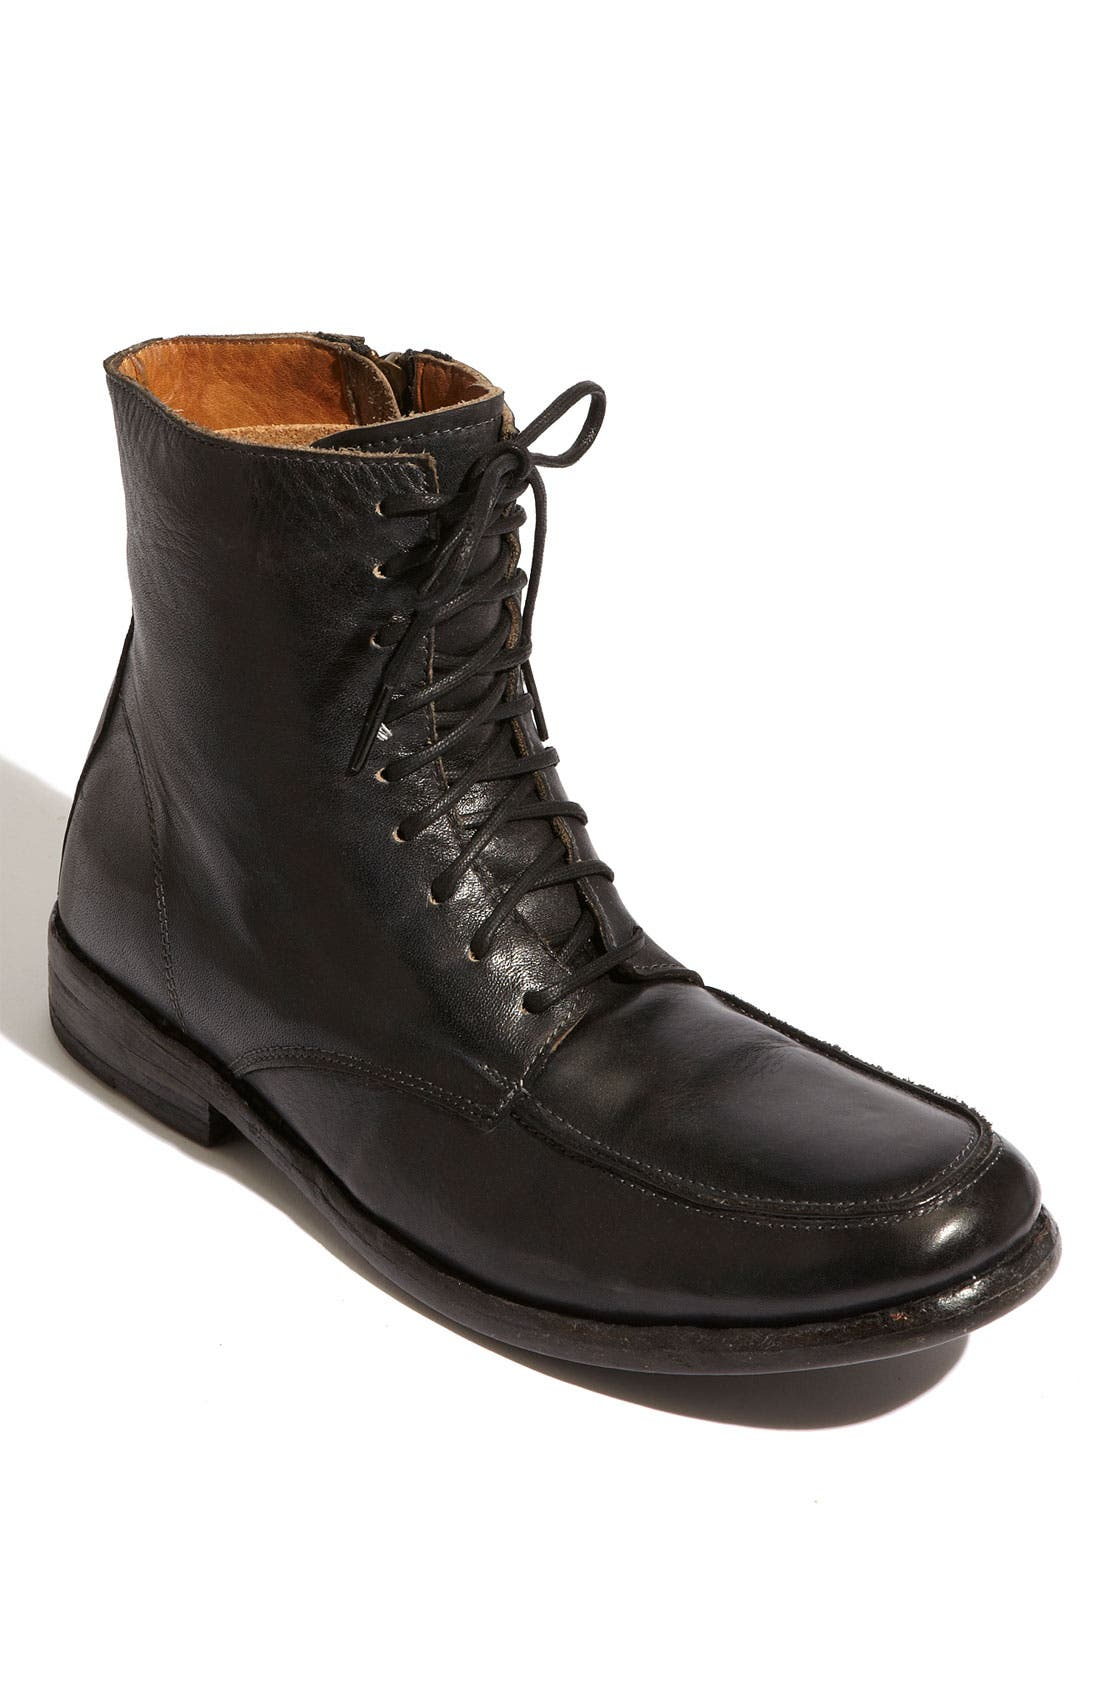 'Leo' Boot,                         Main,                         color, Black Rustic